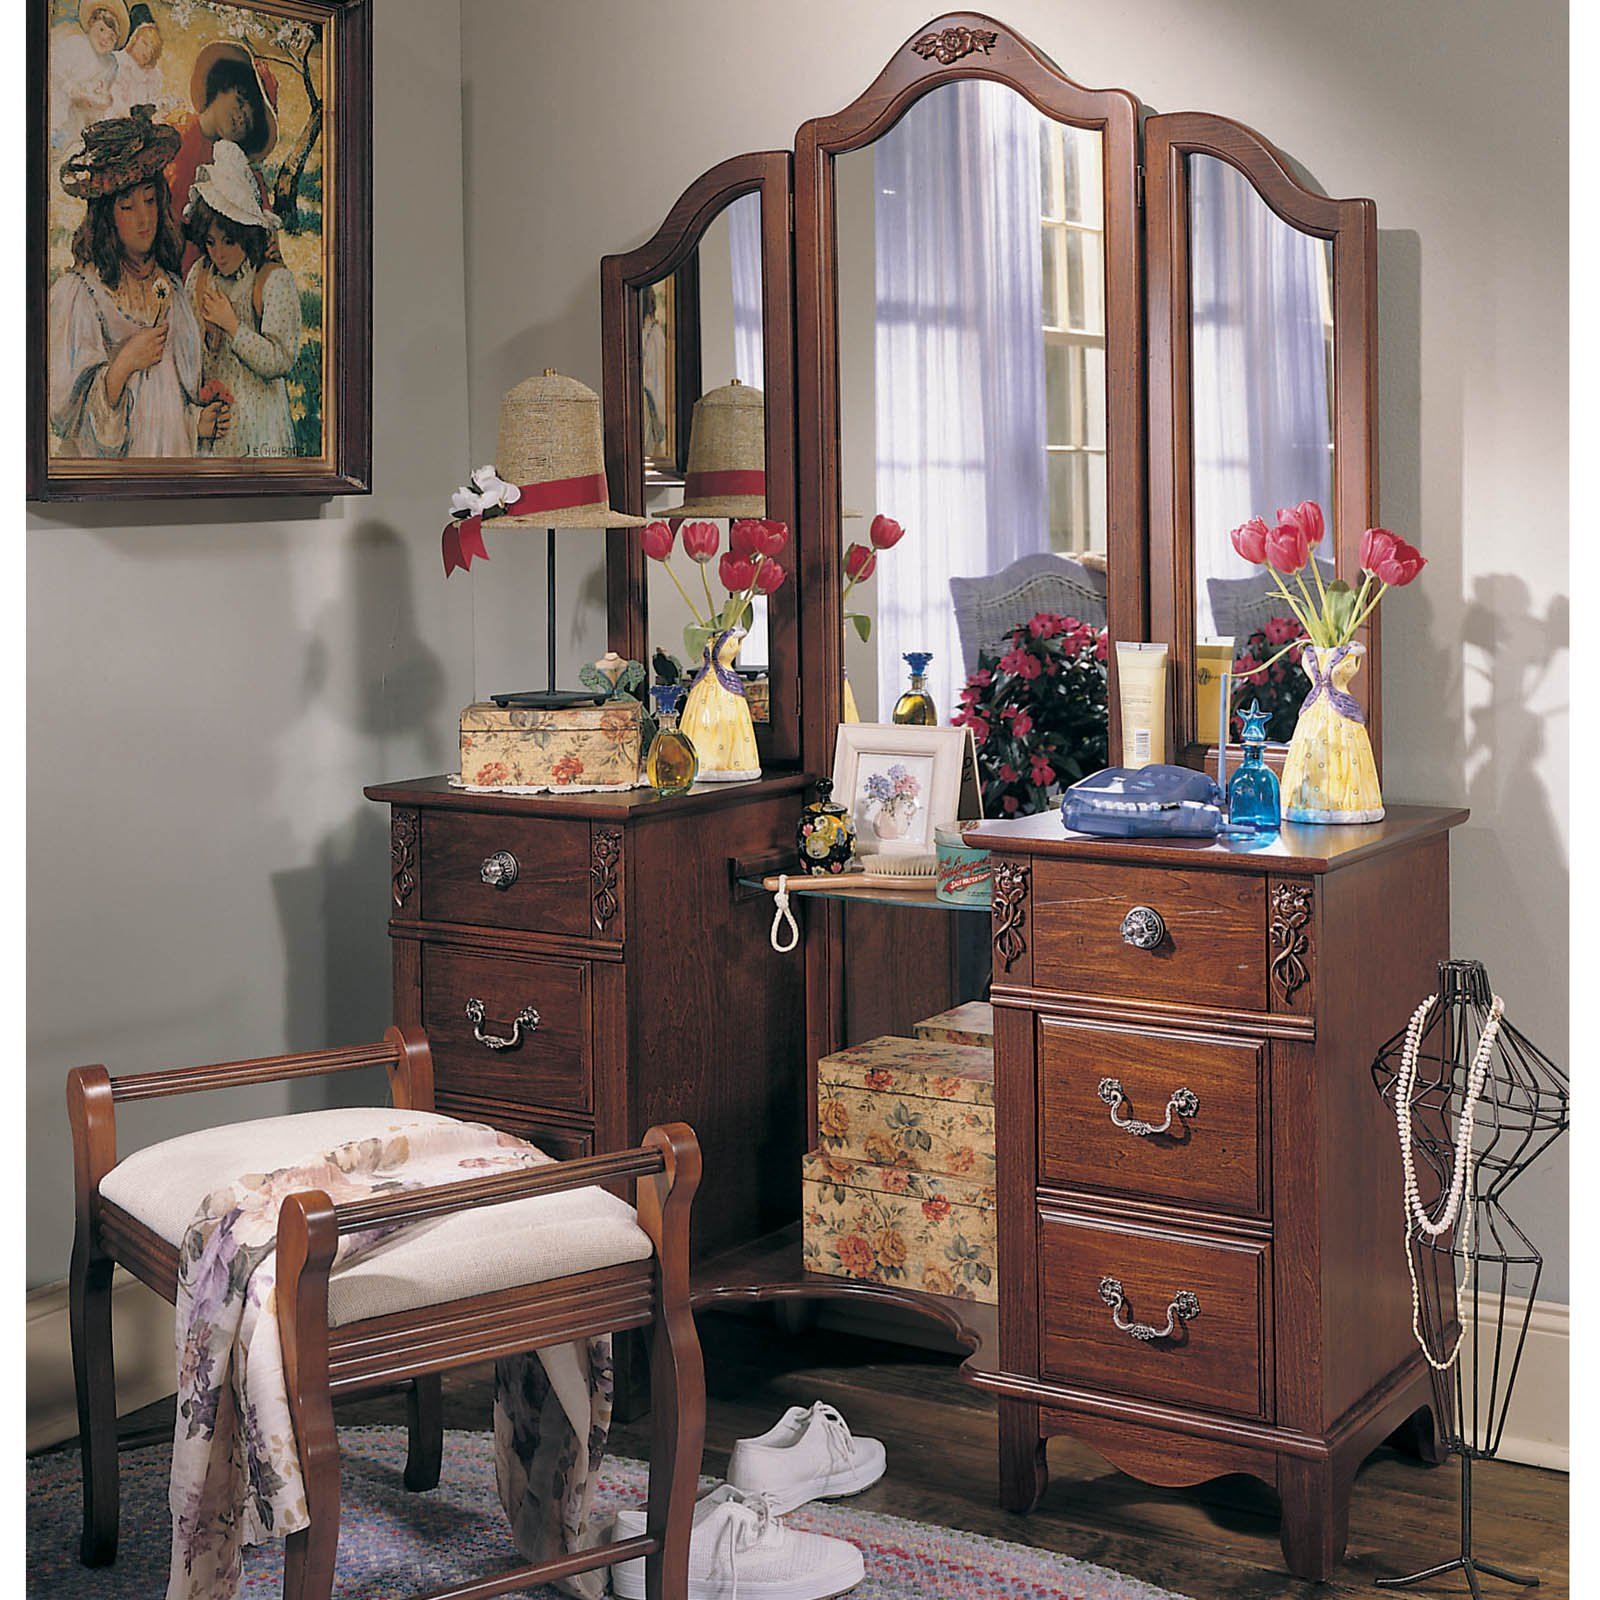 Image of: Antique Bedroom Vanity Style